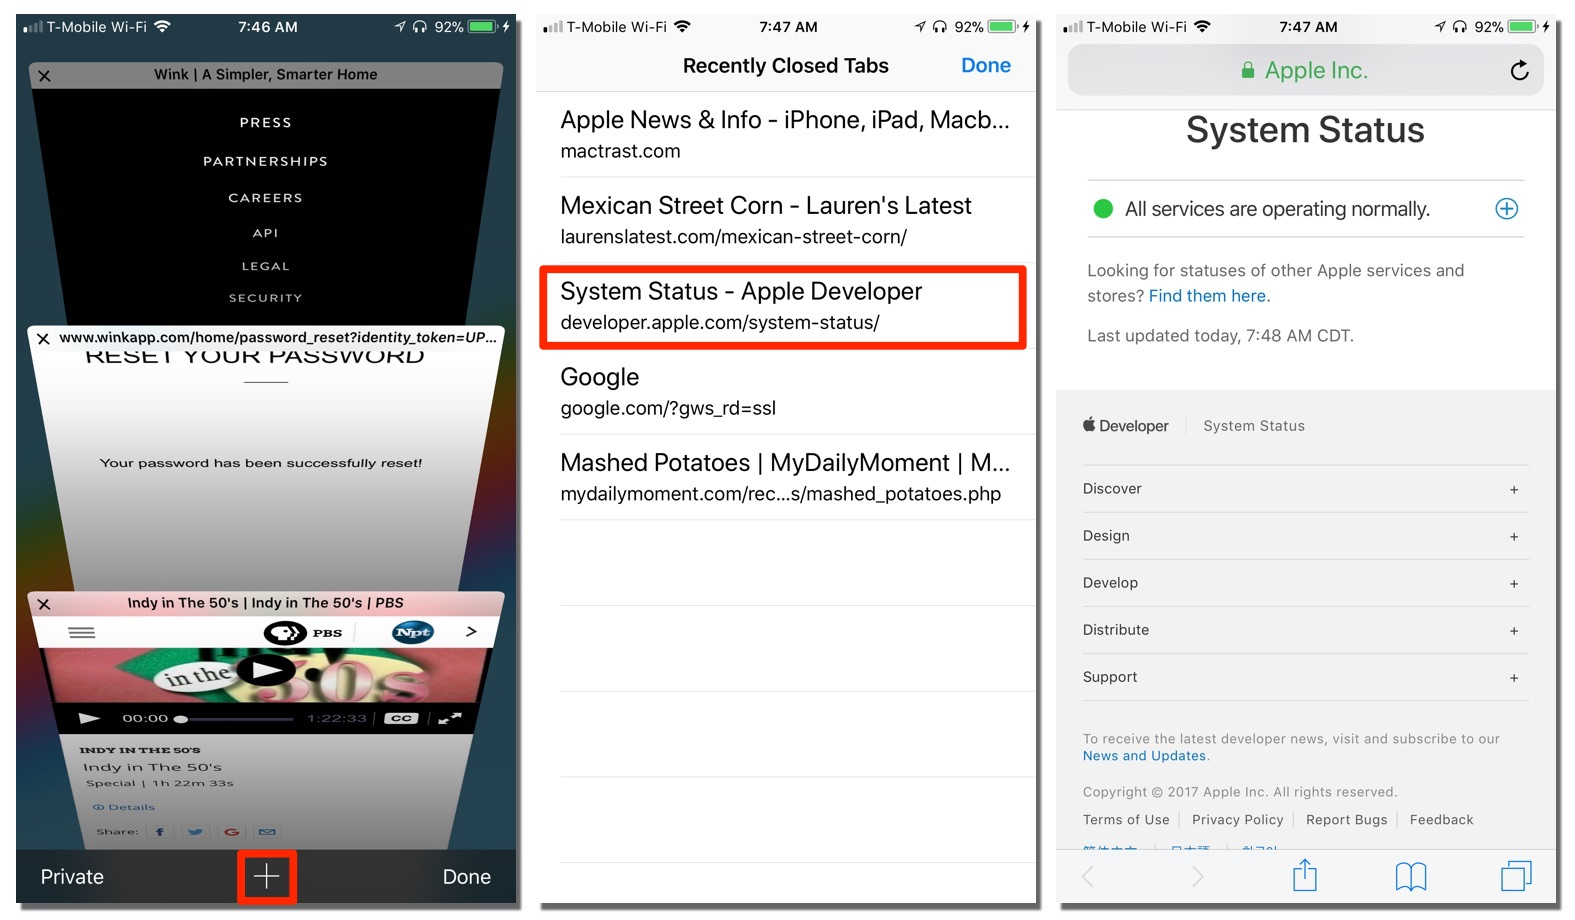 How to Recover Closed Tabs in the Safari Browser on iOS